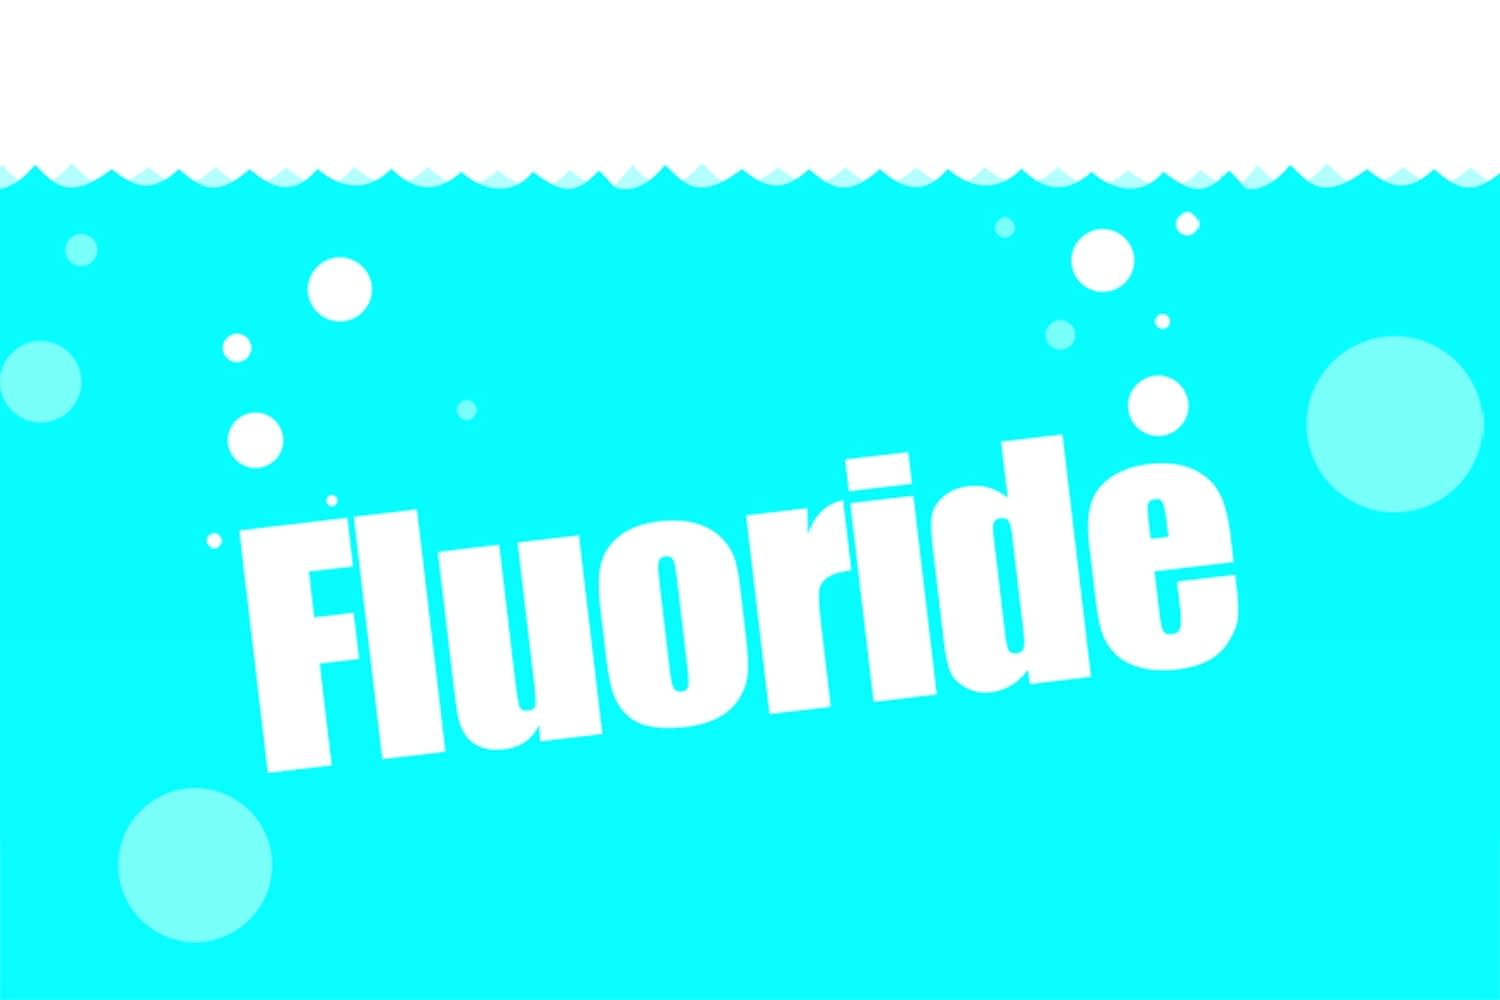 Bottled water without fluoride